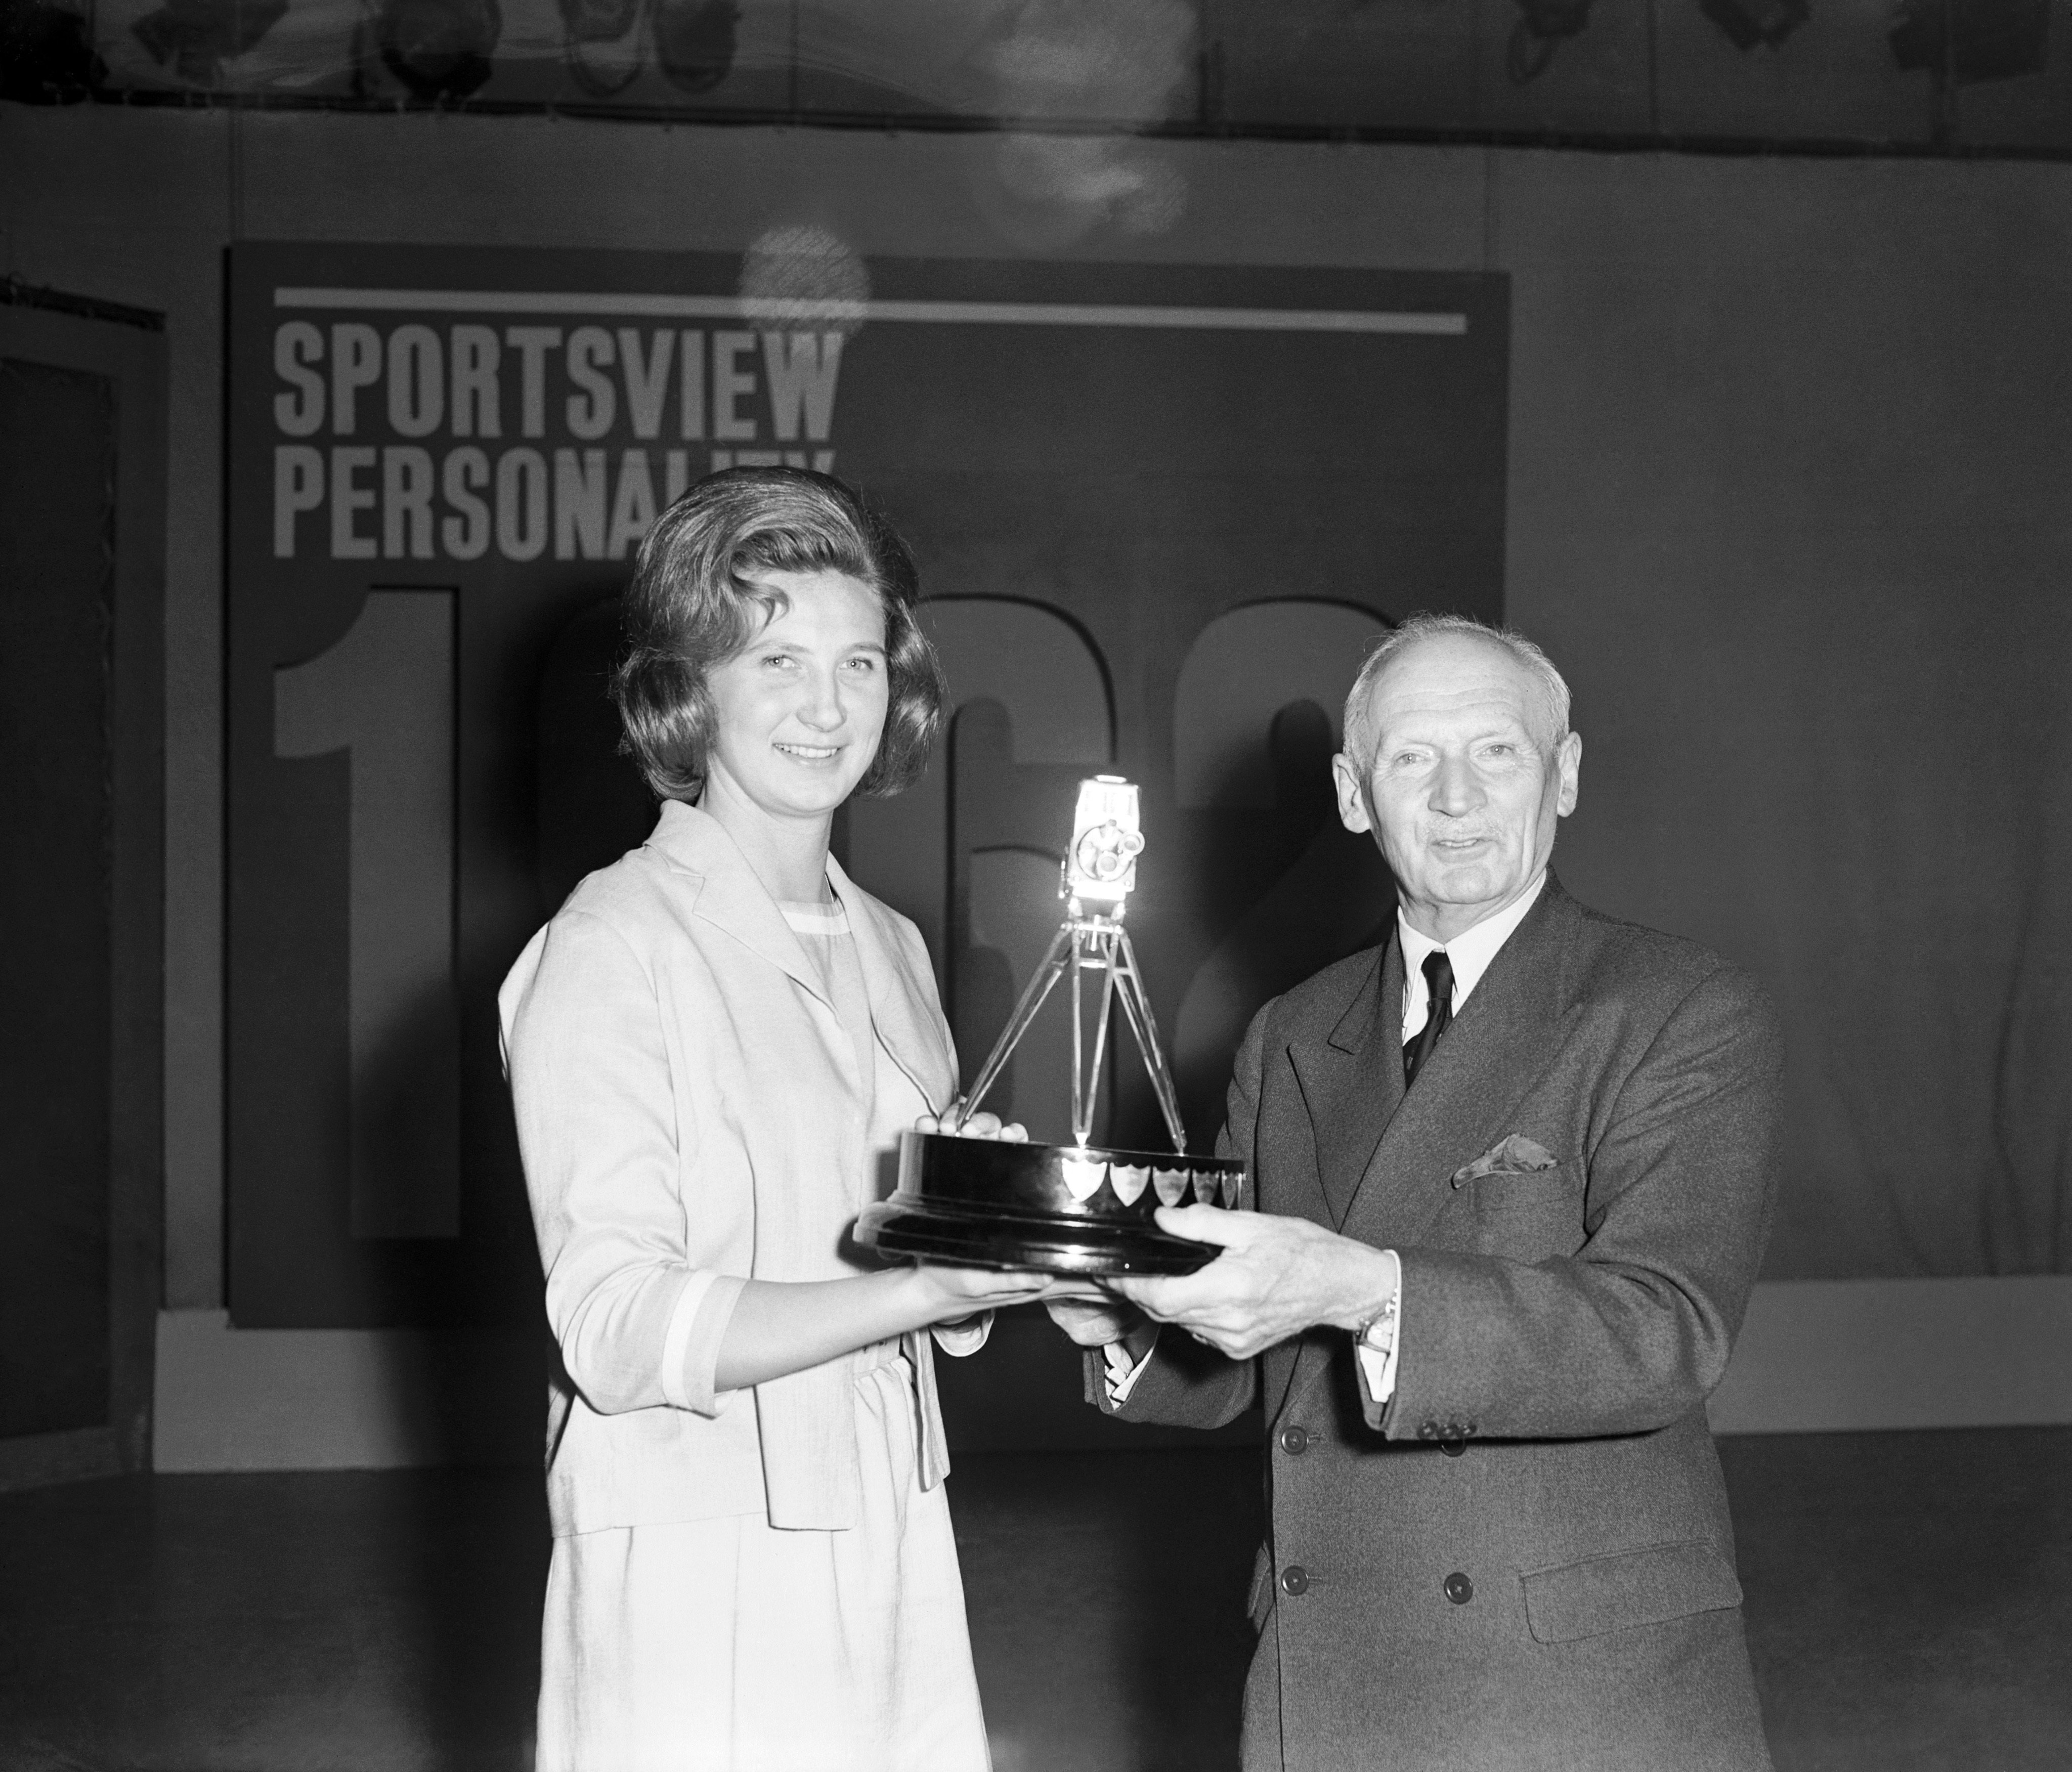 First female SPOTY winner, swimmer Anita Lonsbrough, says 'I didn't prepare a speech because I thought someone else had one'